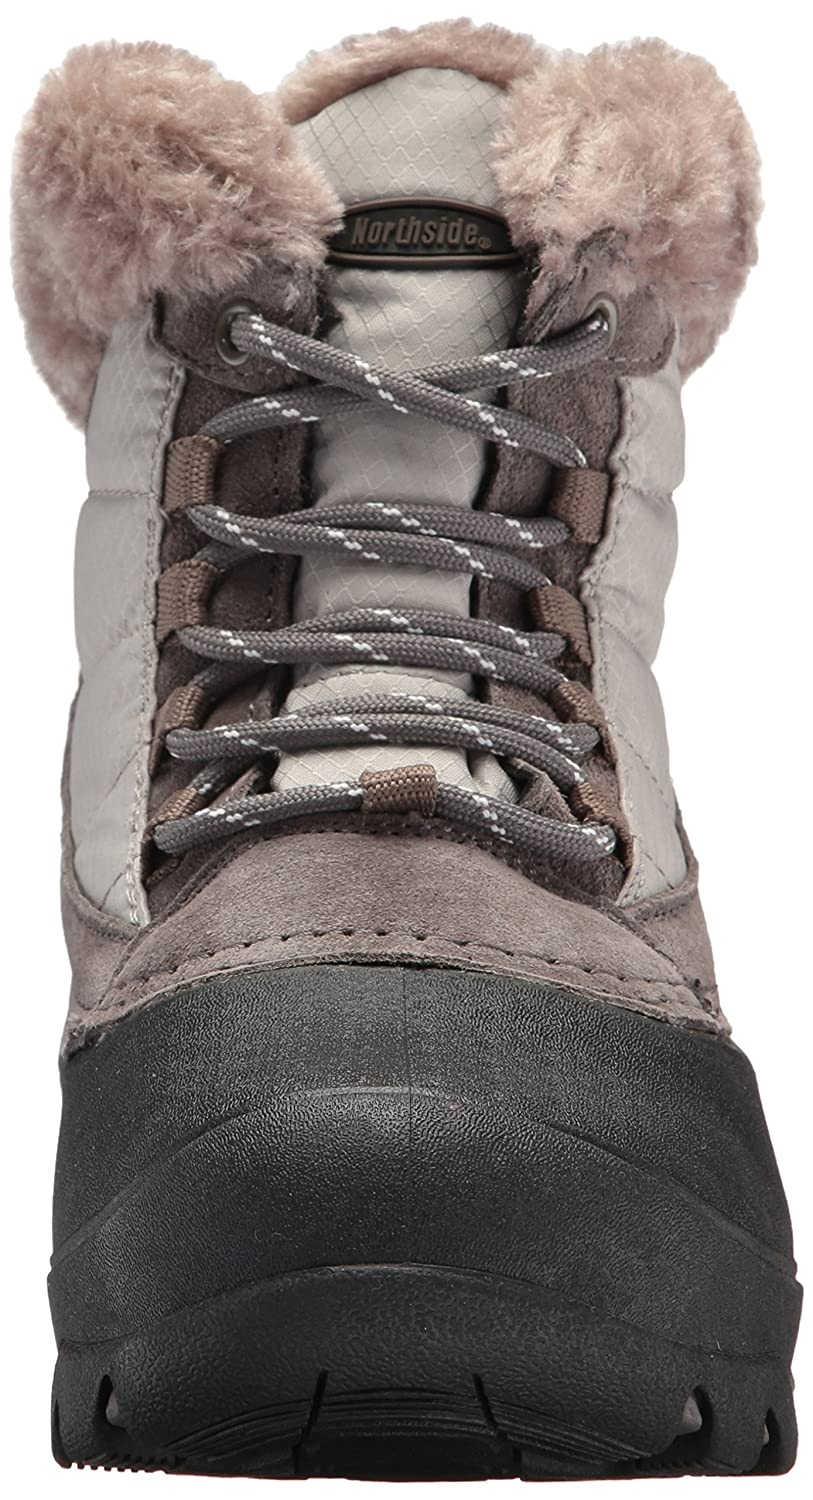 Northside Women's Fairmont II Snow Boot B01N27JLT0 9 B(M) US|Warm Gray